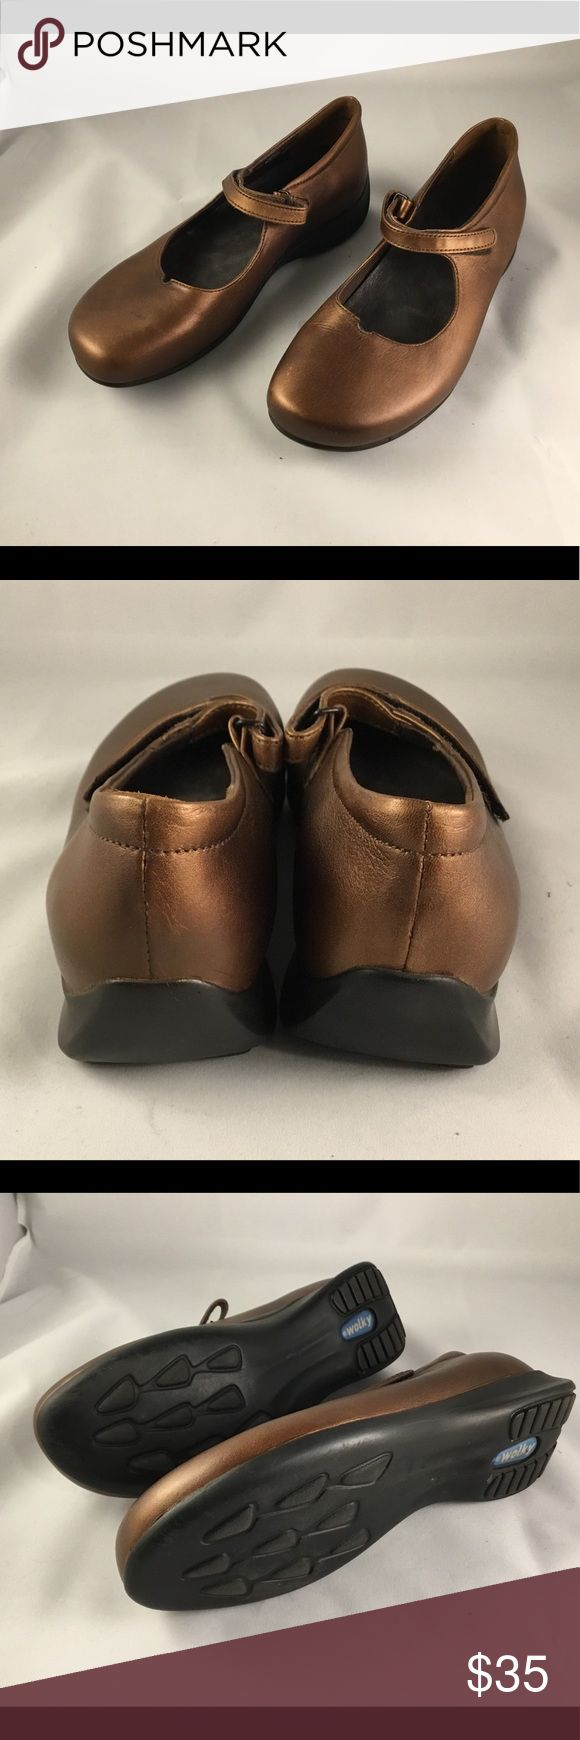 Wonky Copper Leather Mary Jane sz 7.5 Great condition European comfort Shoe in pretty copper leather.  Adjustable strap and shock absorbing rubber sole for all-day ease. Wolky Shoes Flats & Loafers